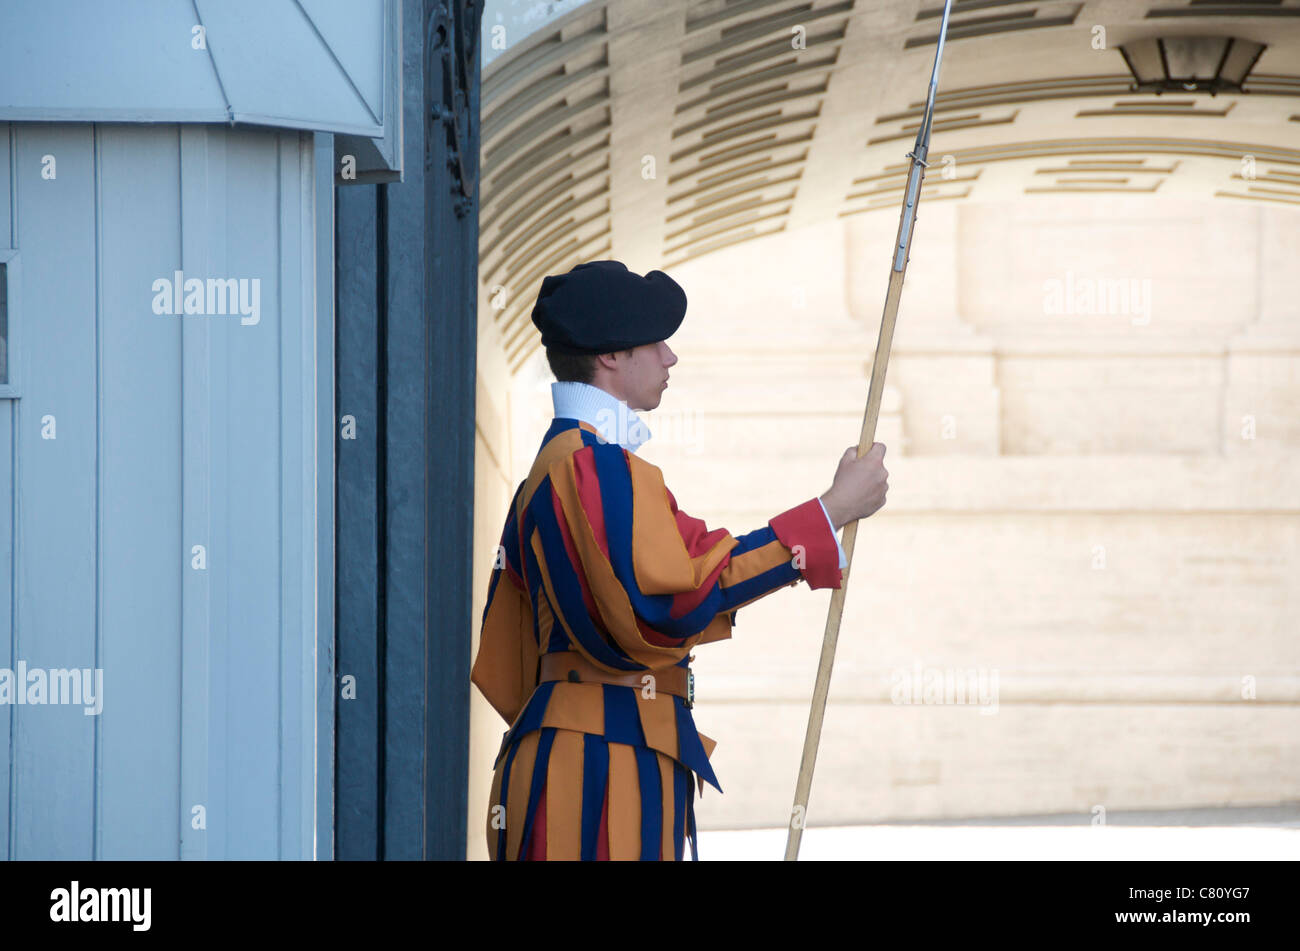 Swiss guard soldier at St. Peter's Basilica, Vatican, Rome, Italy - Stock Image